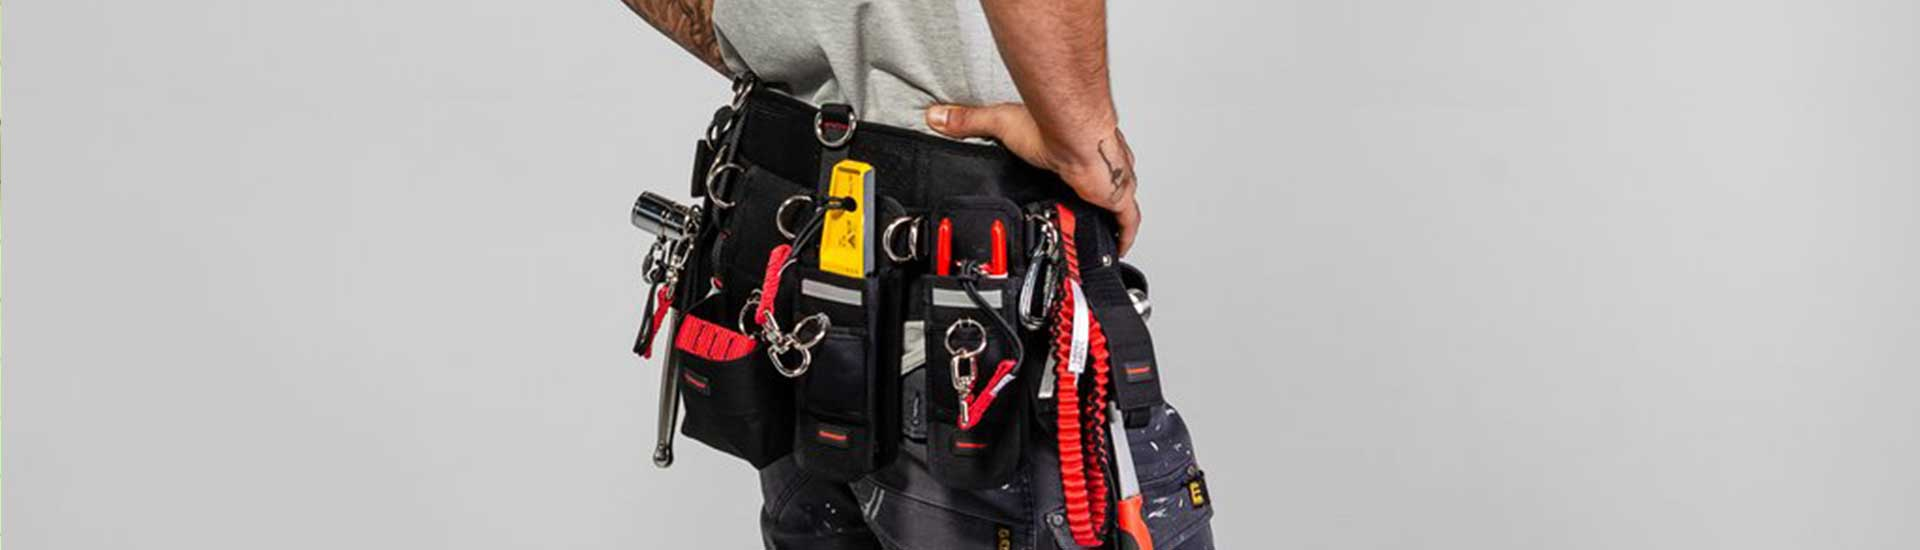 Tool Belts & Tools